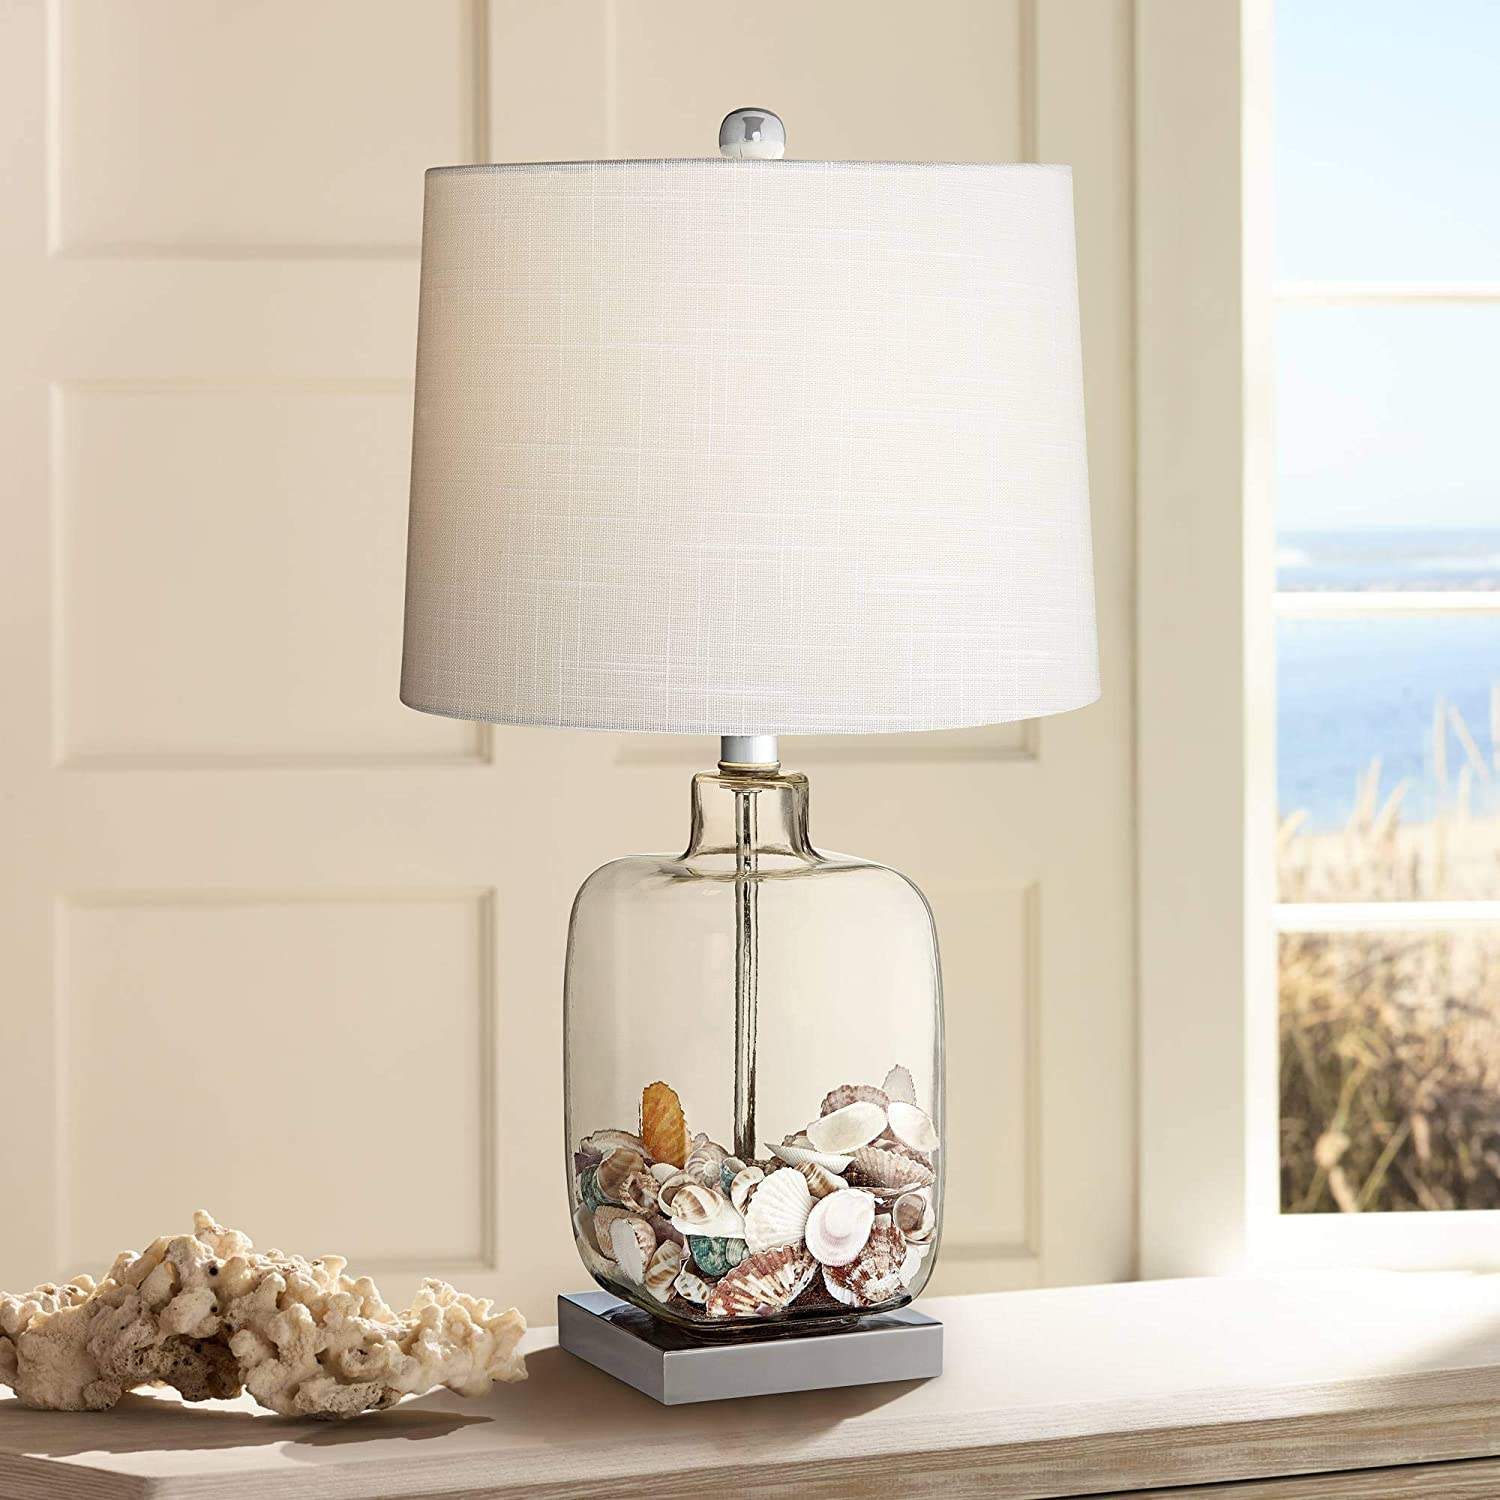 Coastal Accent Table Lamp Clear Glass Fillable Sea Shells White Drum Shade for Living Room Family Bedroom Bedside